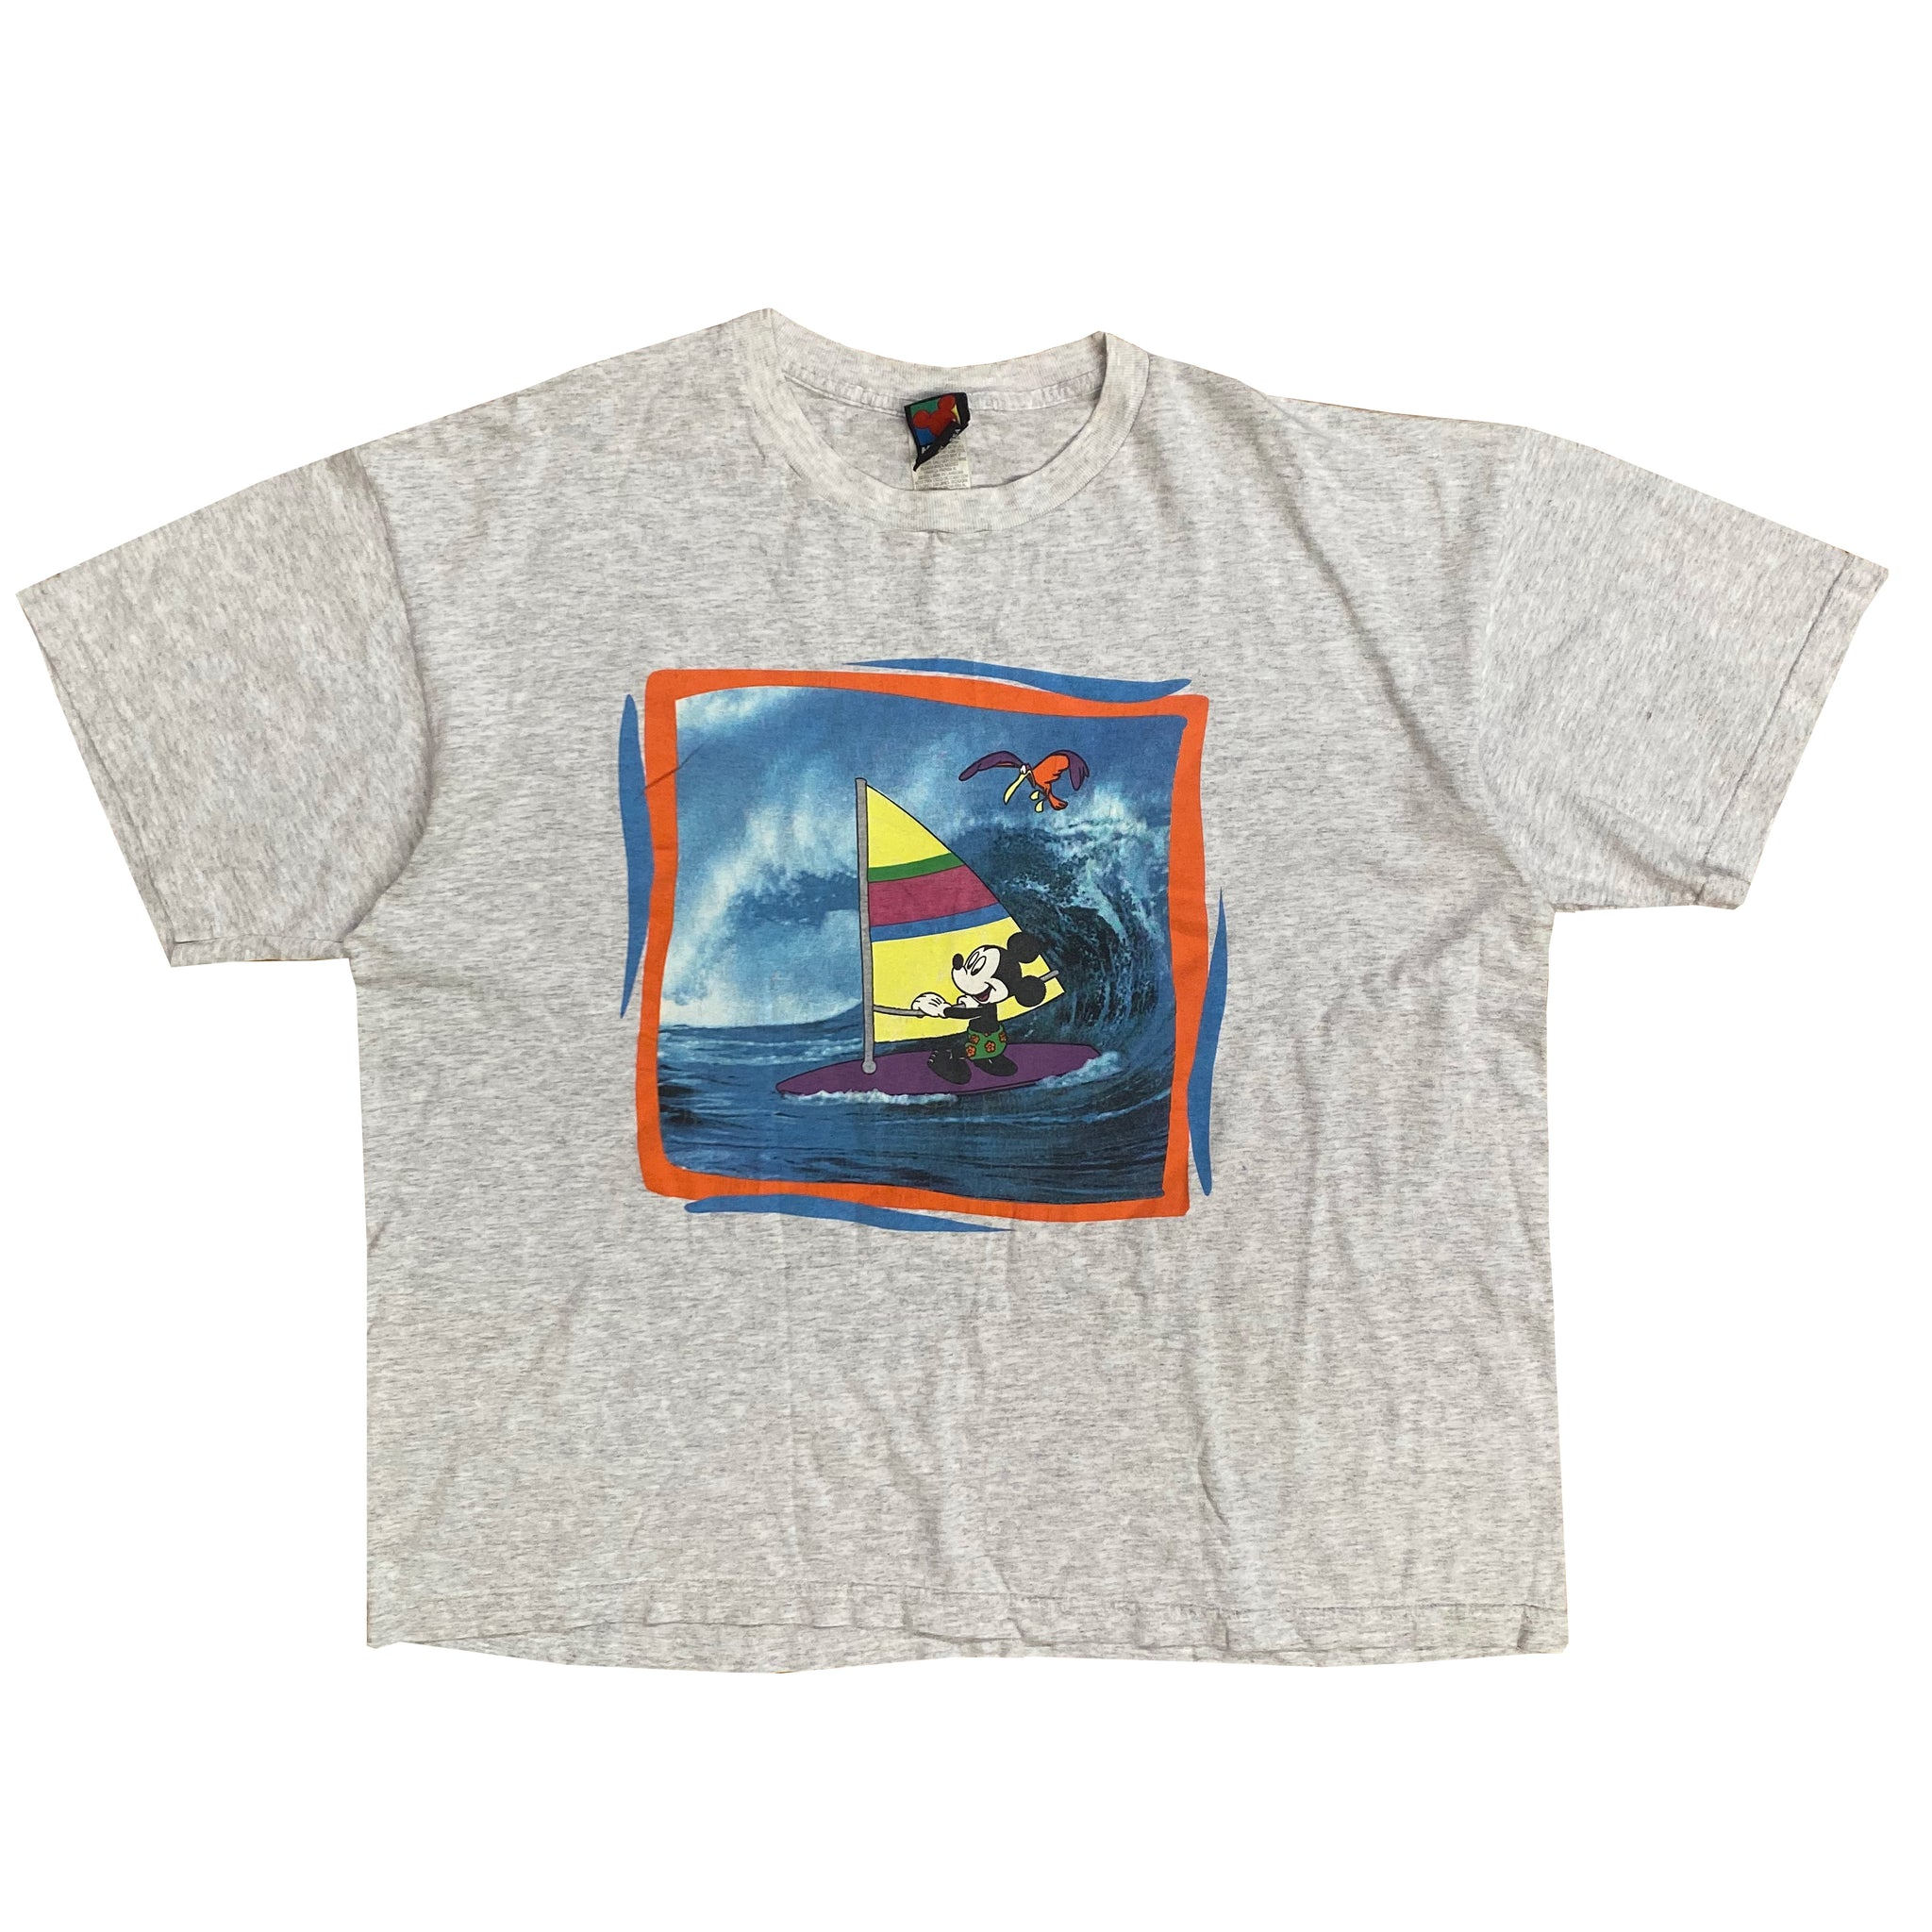 Windsurfing Mickey - XL - VTG 90s